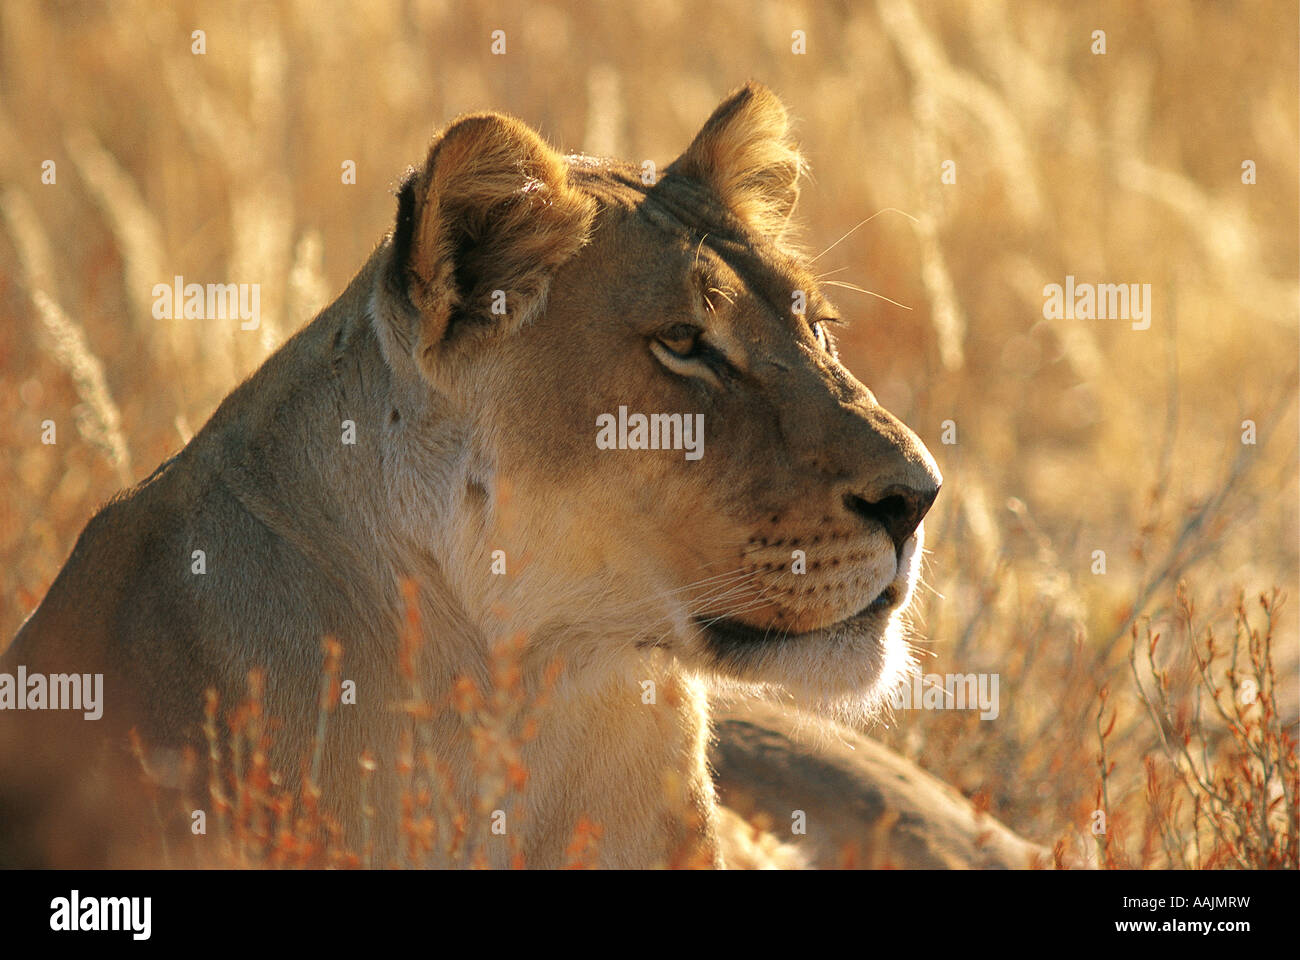 Portrait of Lioness in the Kalahari Northern Cape South Africa - Stock Image